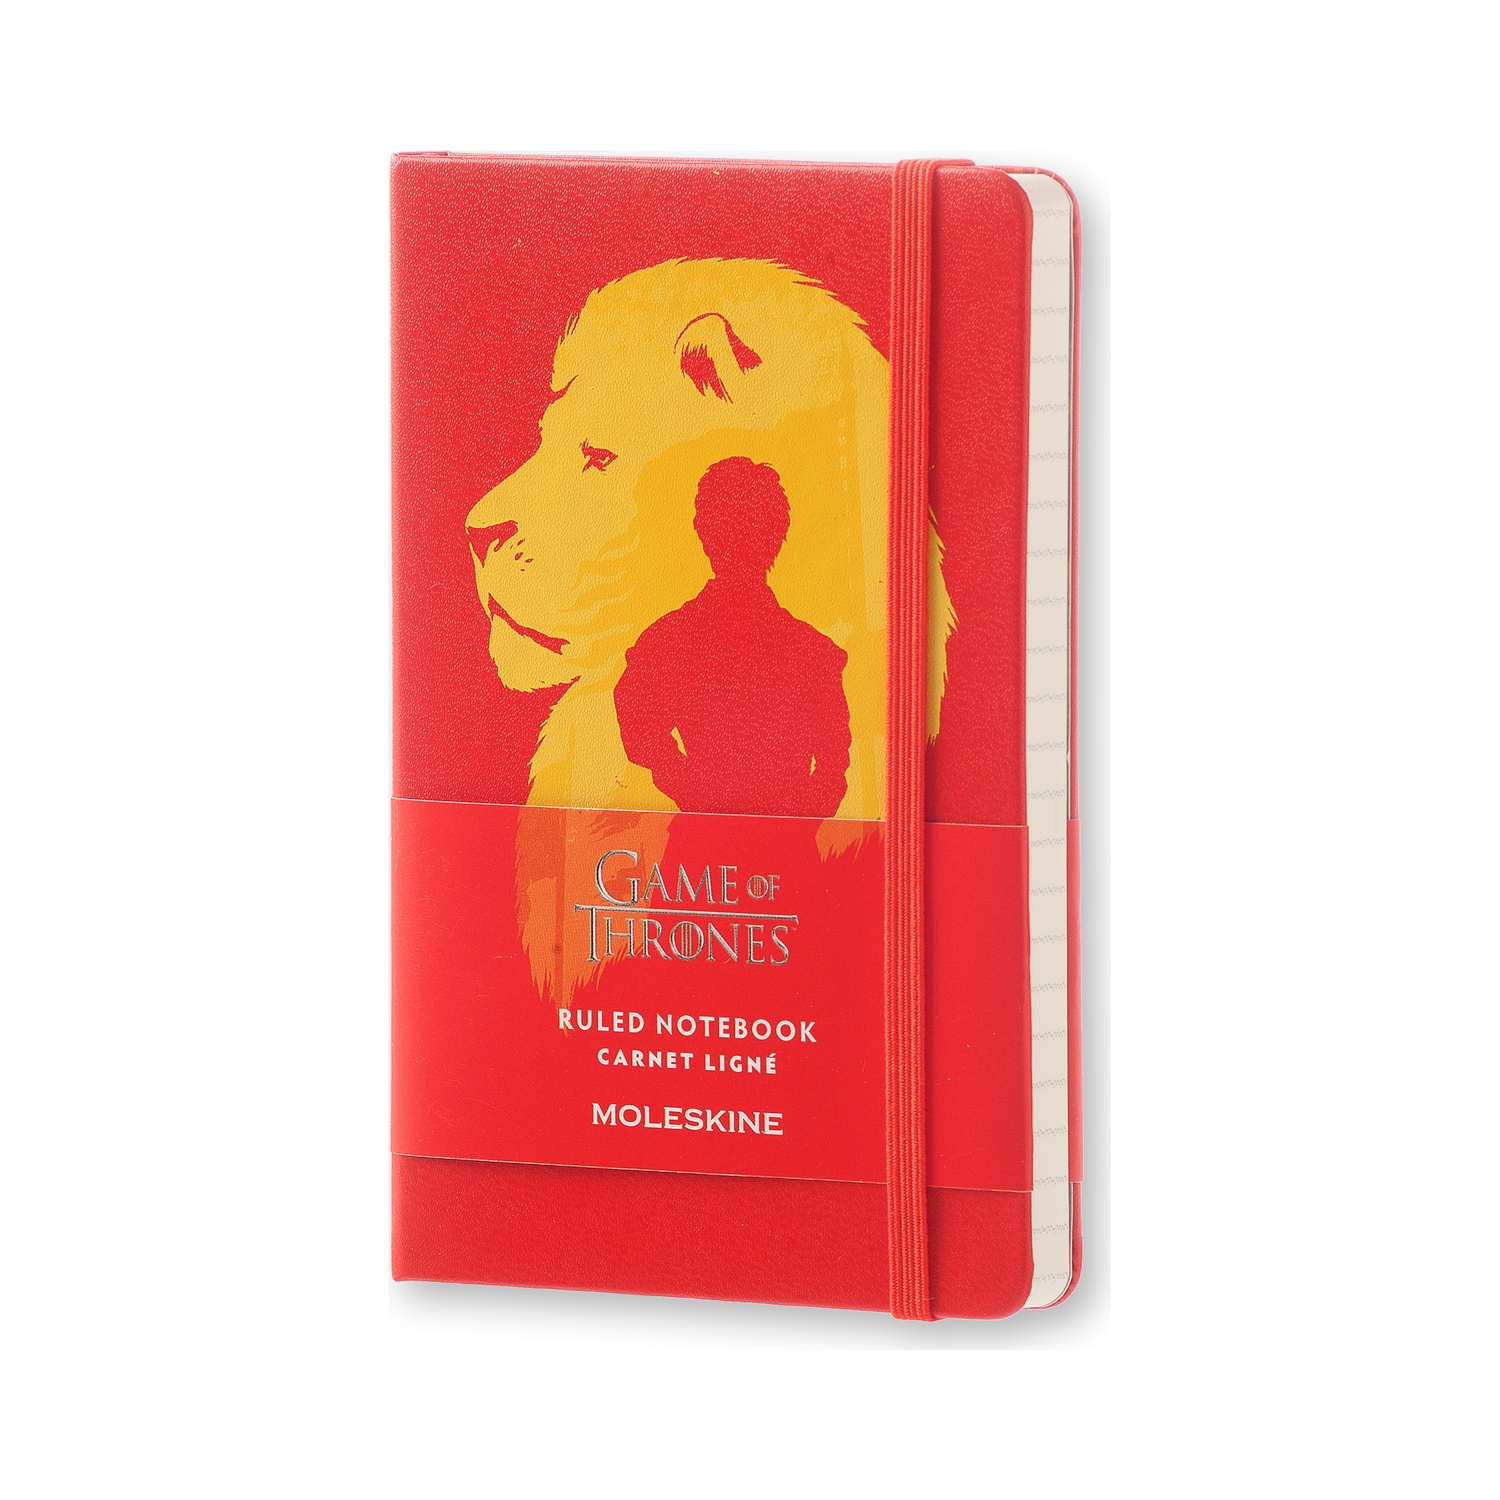 Objectos de escrita moleskine guerra dos tronos - Game of thrones objet ...